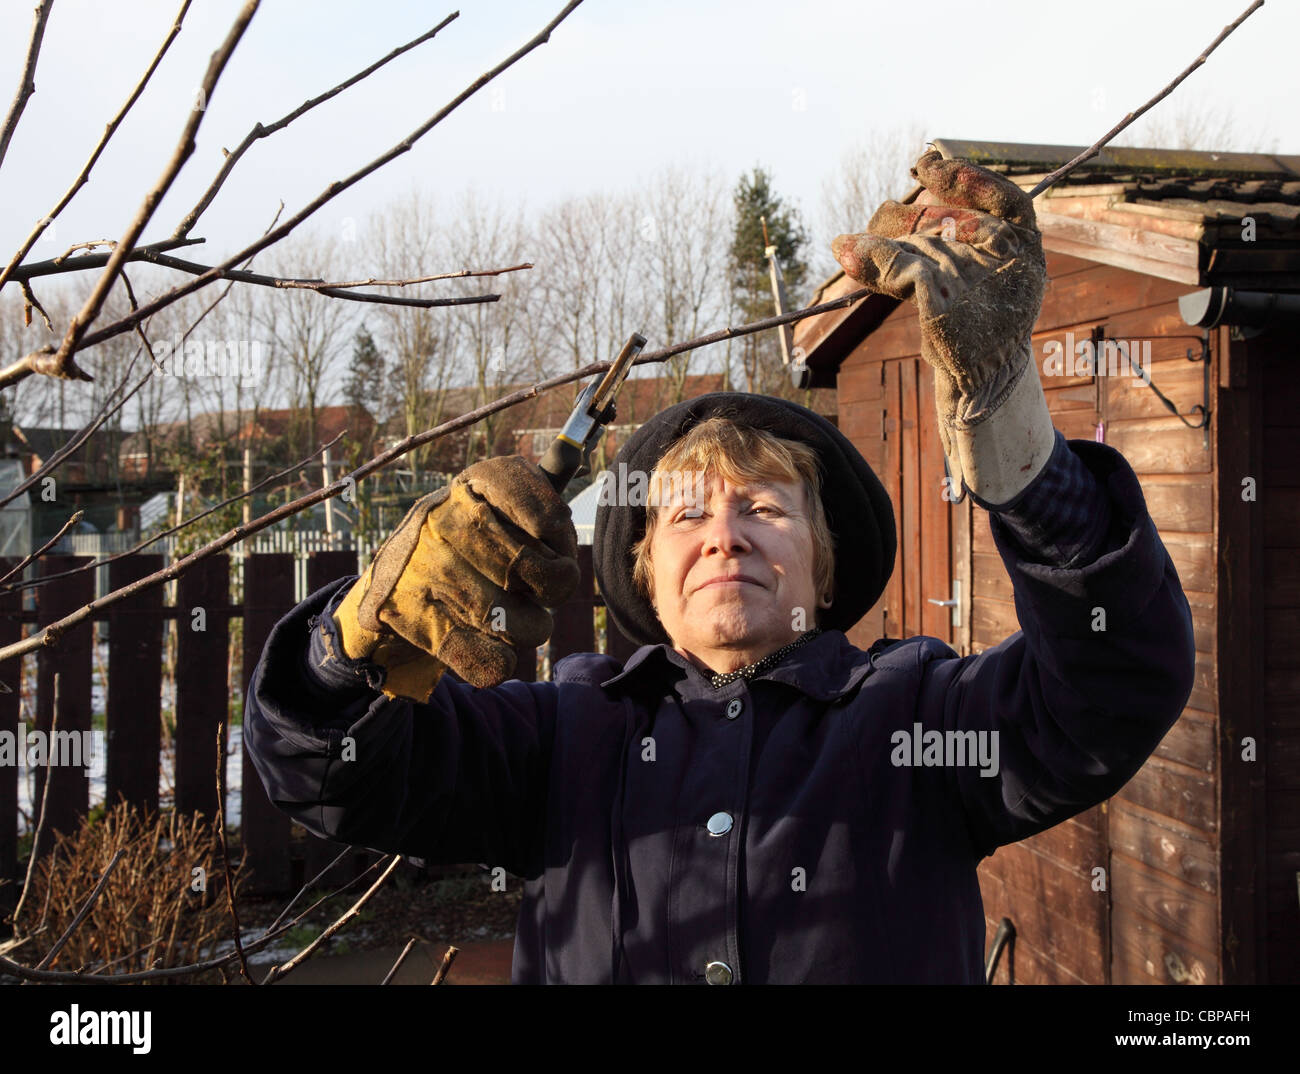 Mature woman pruning an apple tree in an allotment  at winter time. Stock Photo